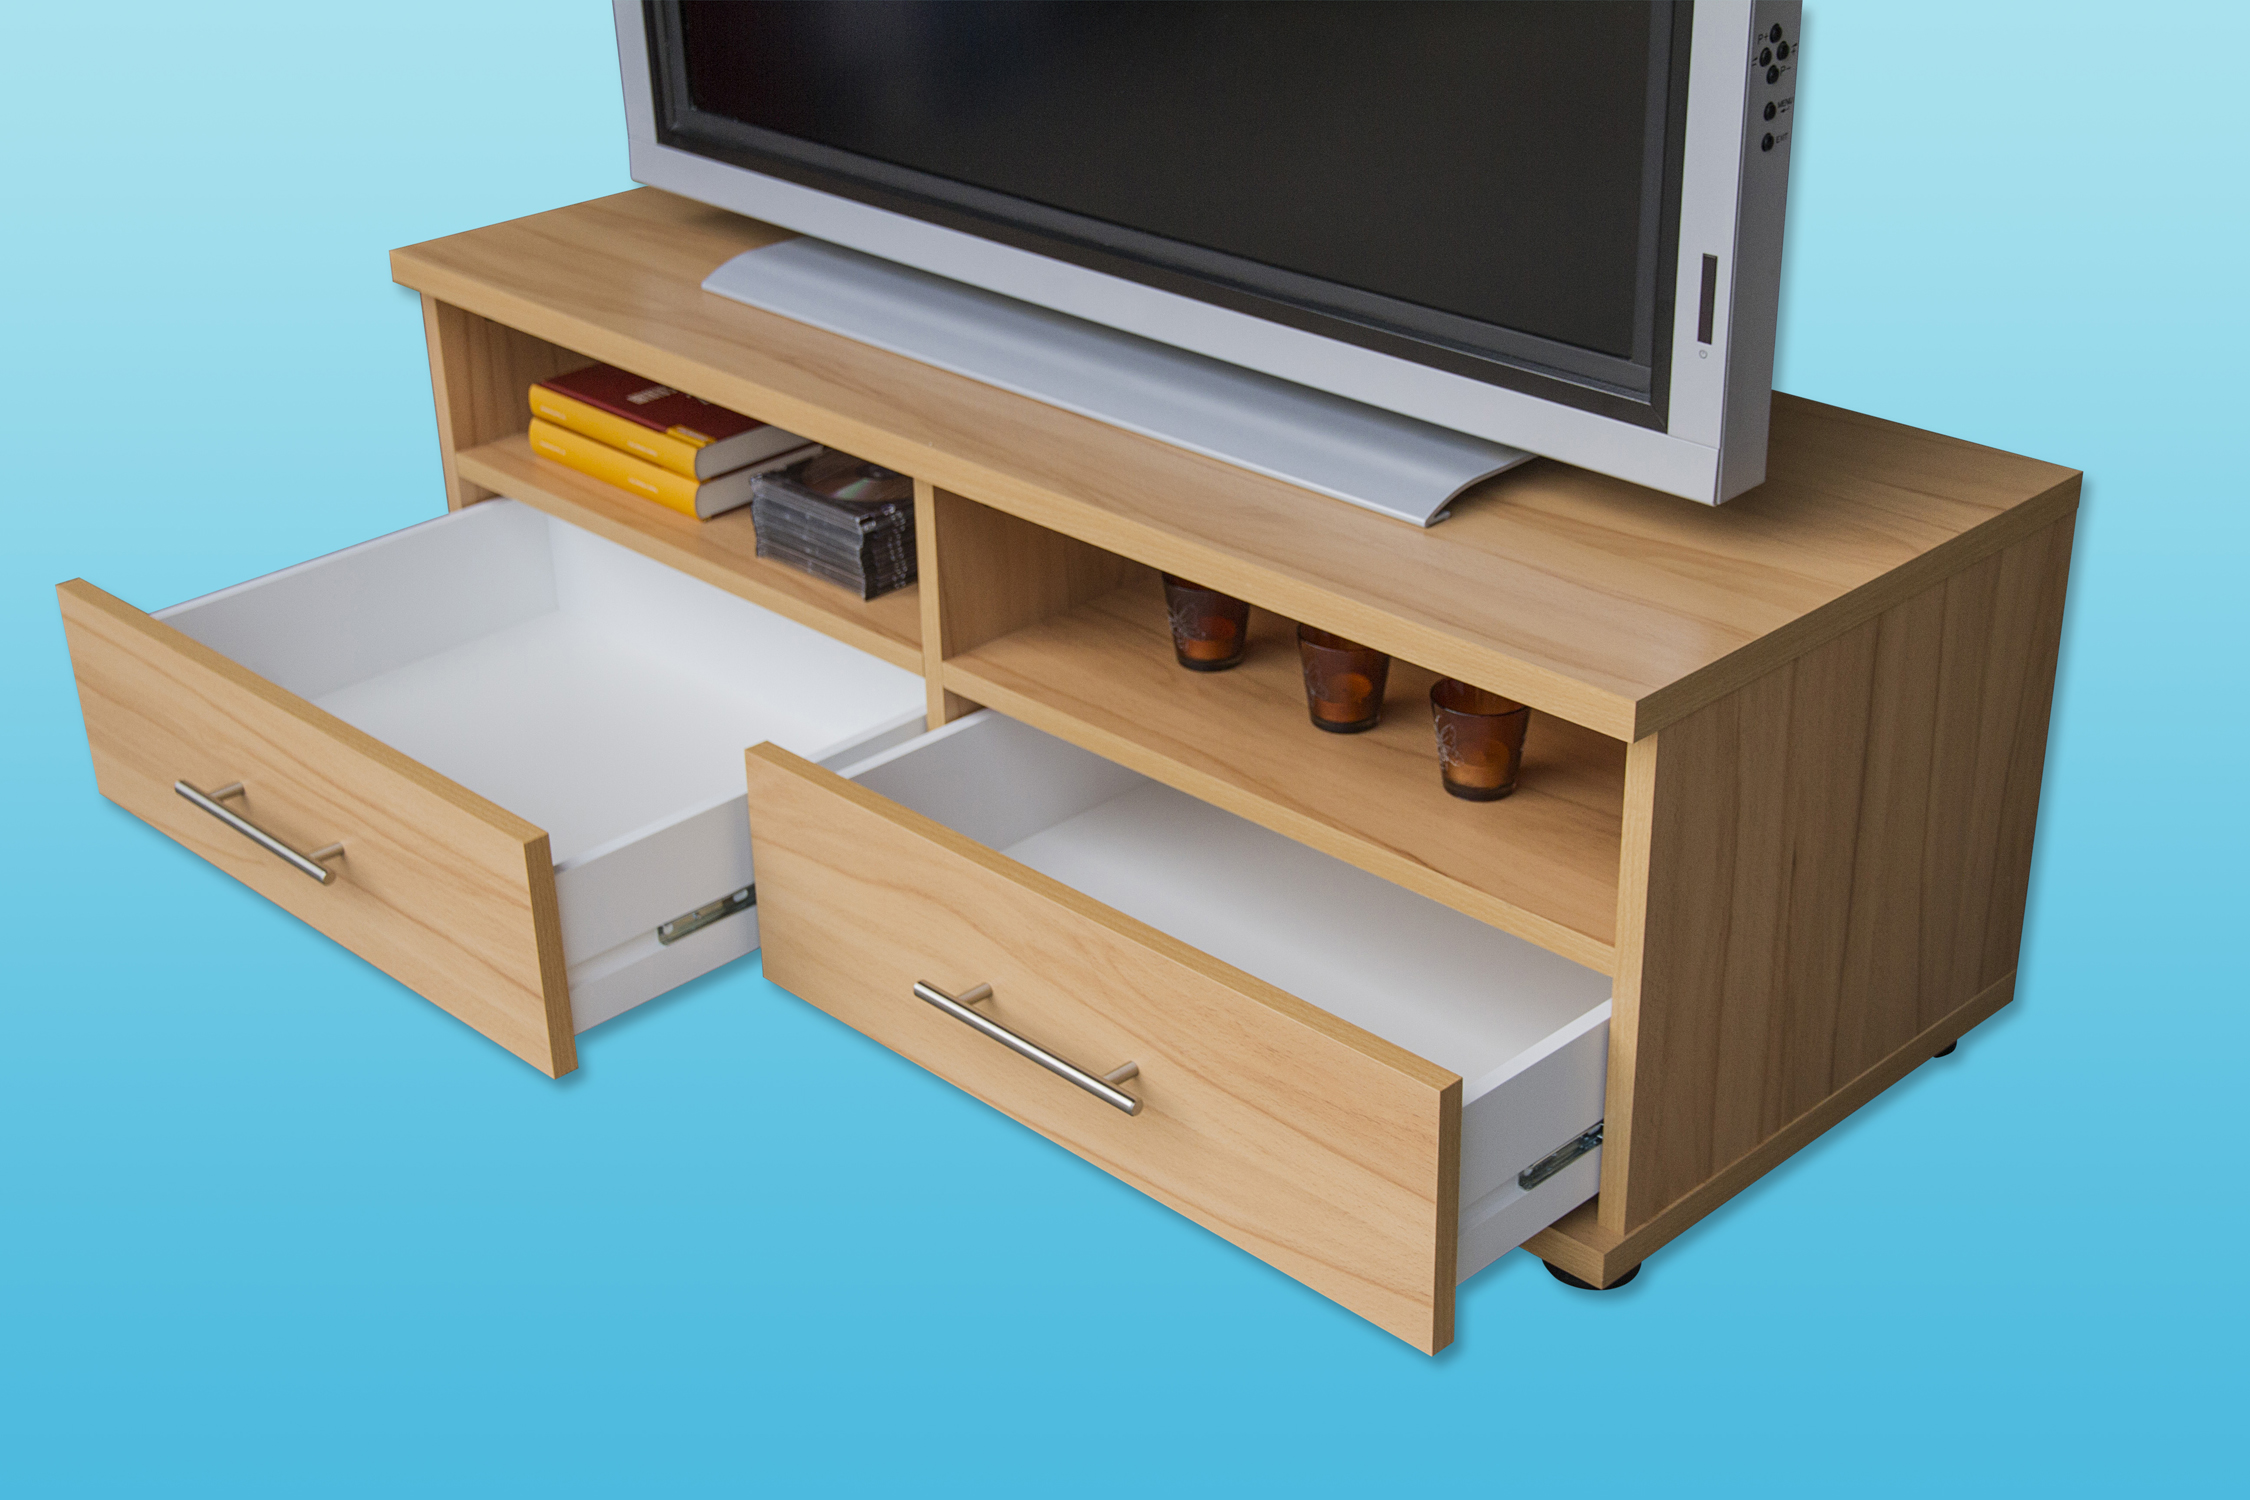 tv lowboard tv schrank mod tv650 kernbuche nussbaum buche hochglanz geseke. Black Bedroom Furniture Sets. Home Design Ideas